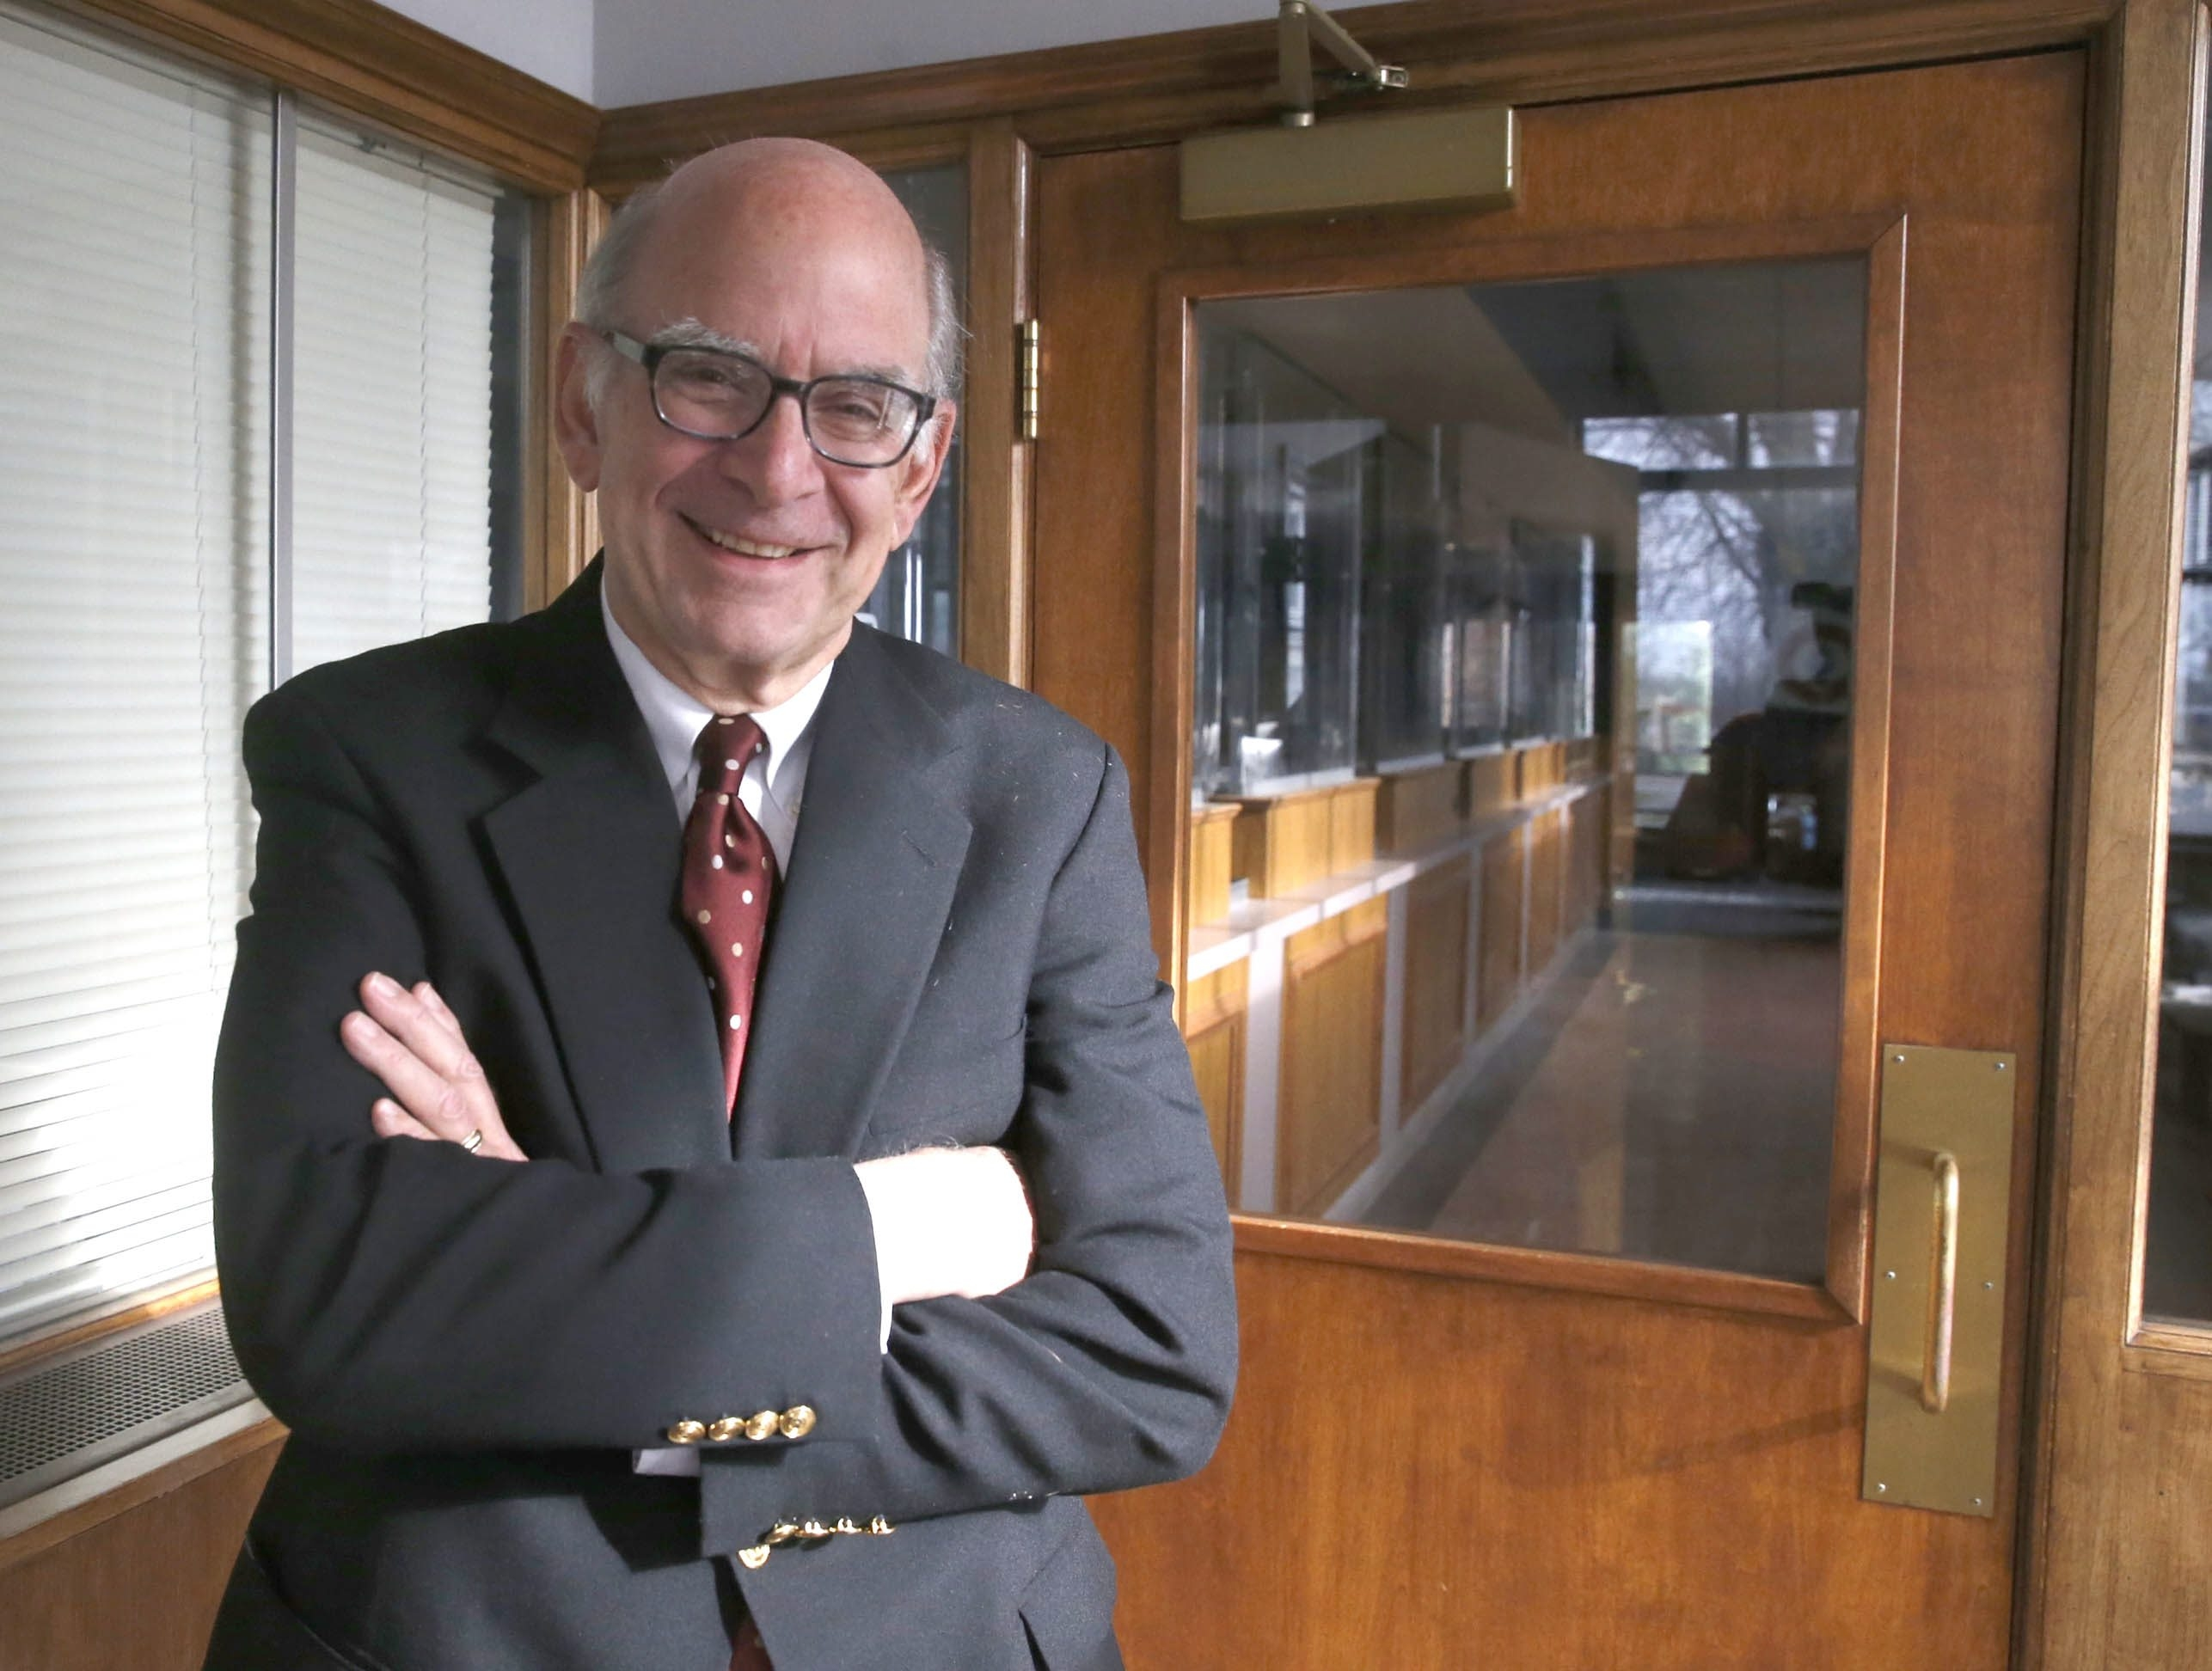 Angelo Fatta, new Medical Campus board chairman, has long been a part of efforts to build a life sciences economy.